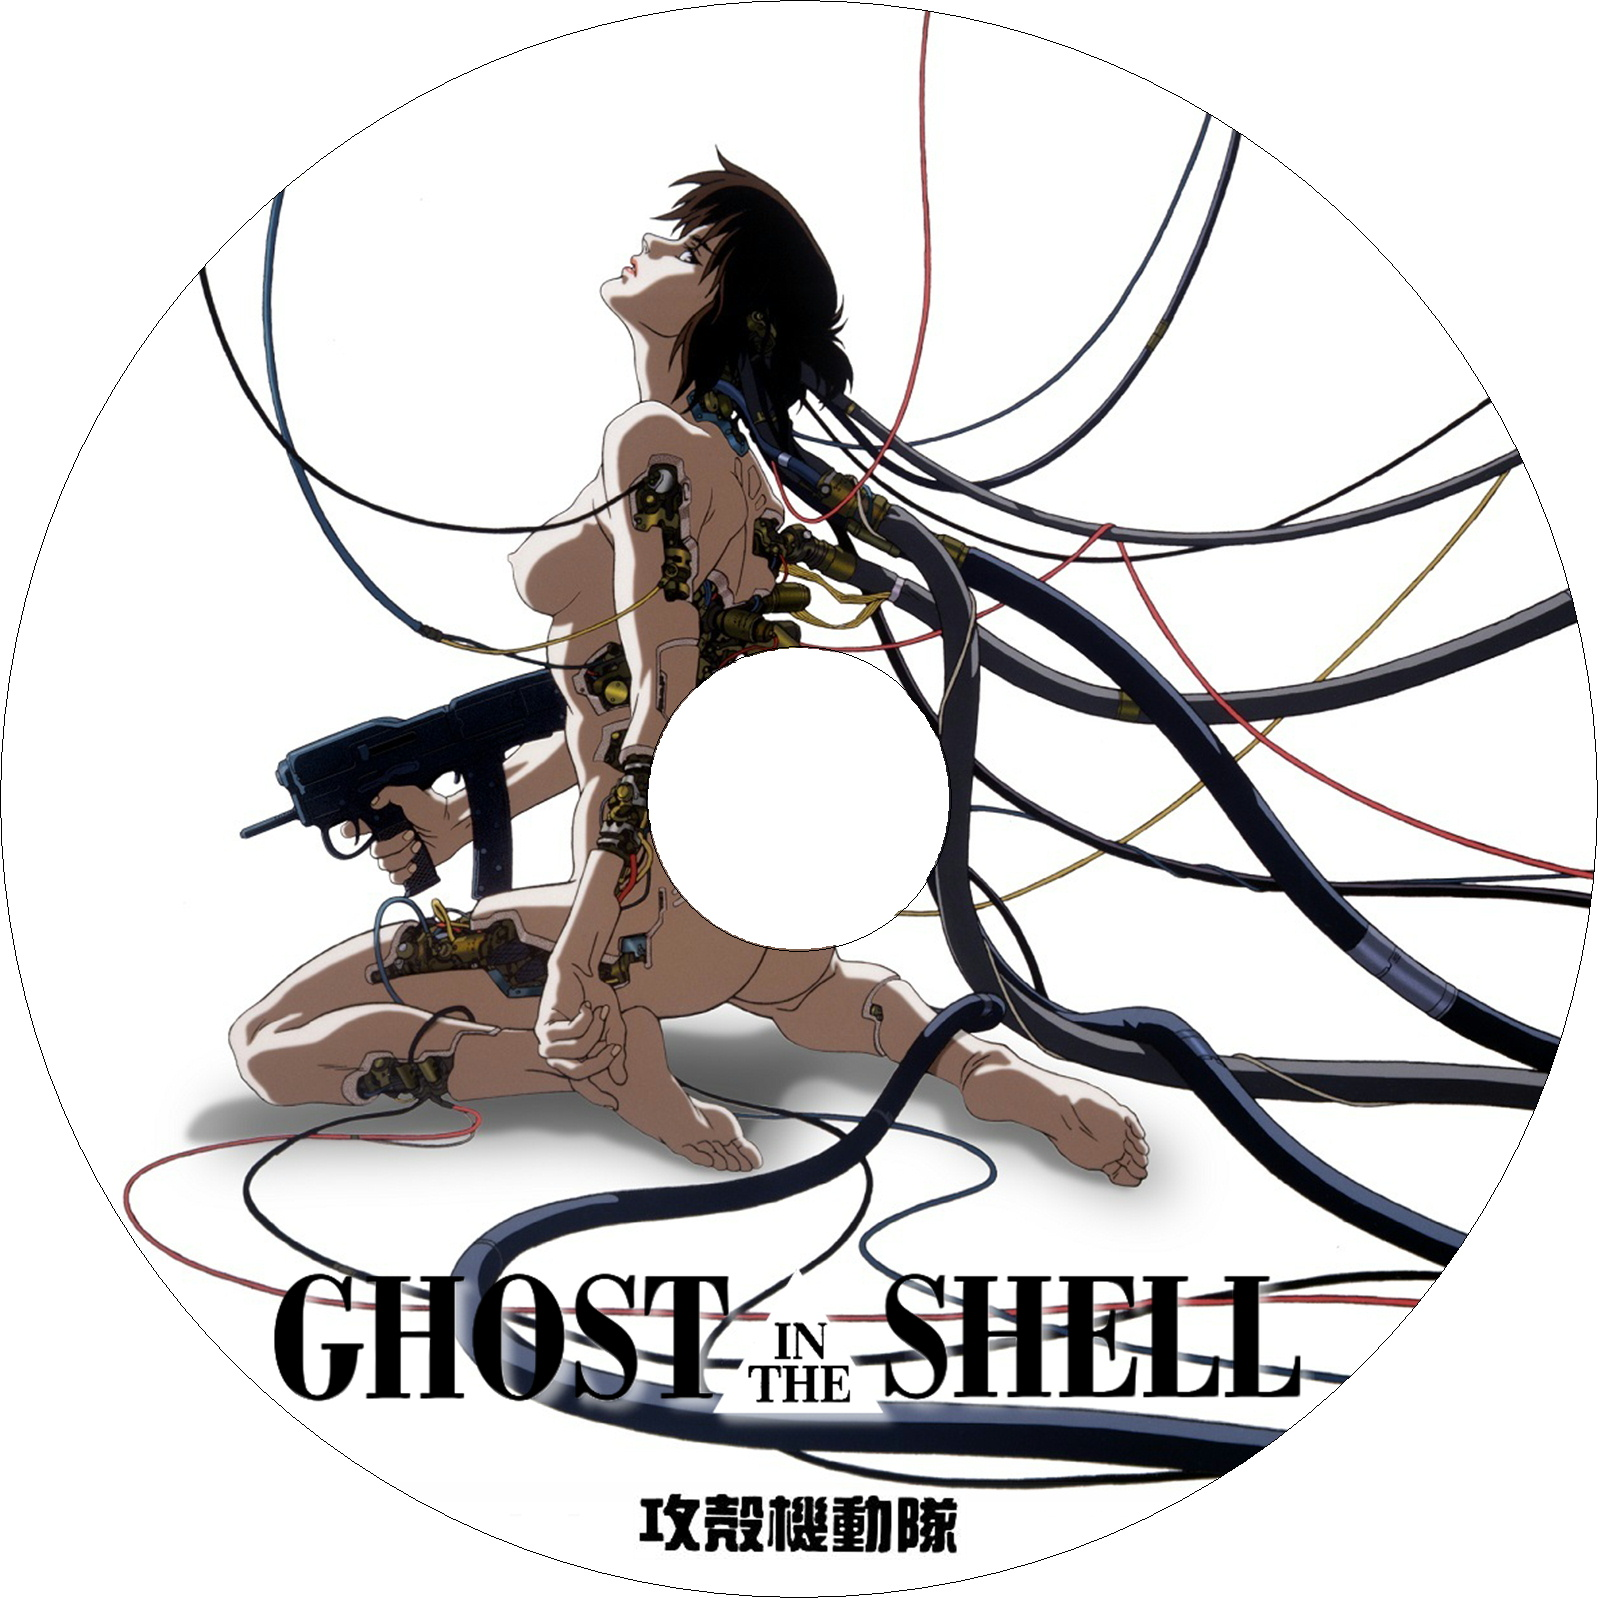 GHOST IN THE SHELL 攻殻機動隊 ラベル1